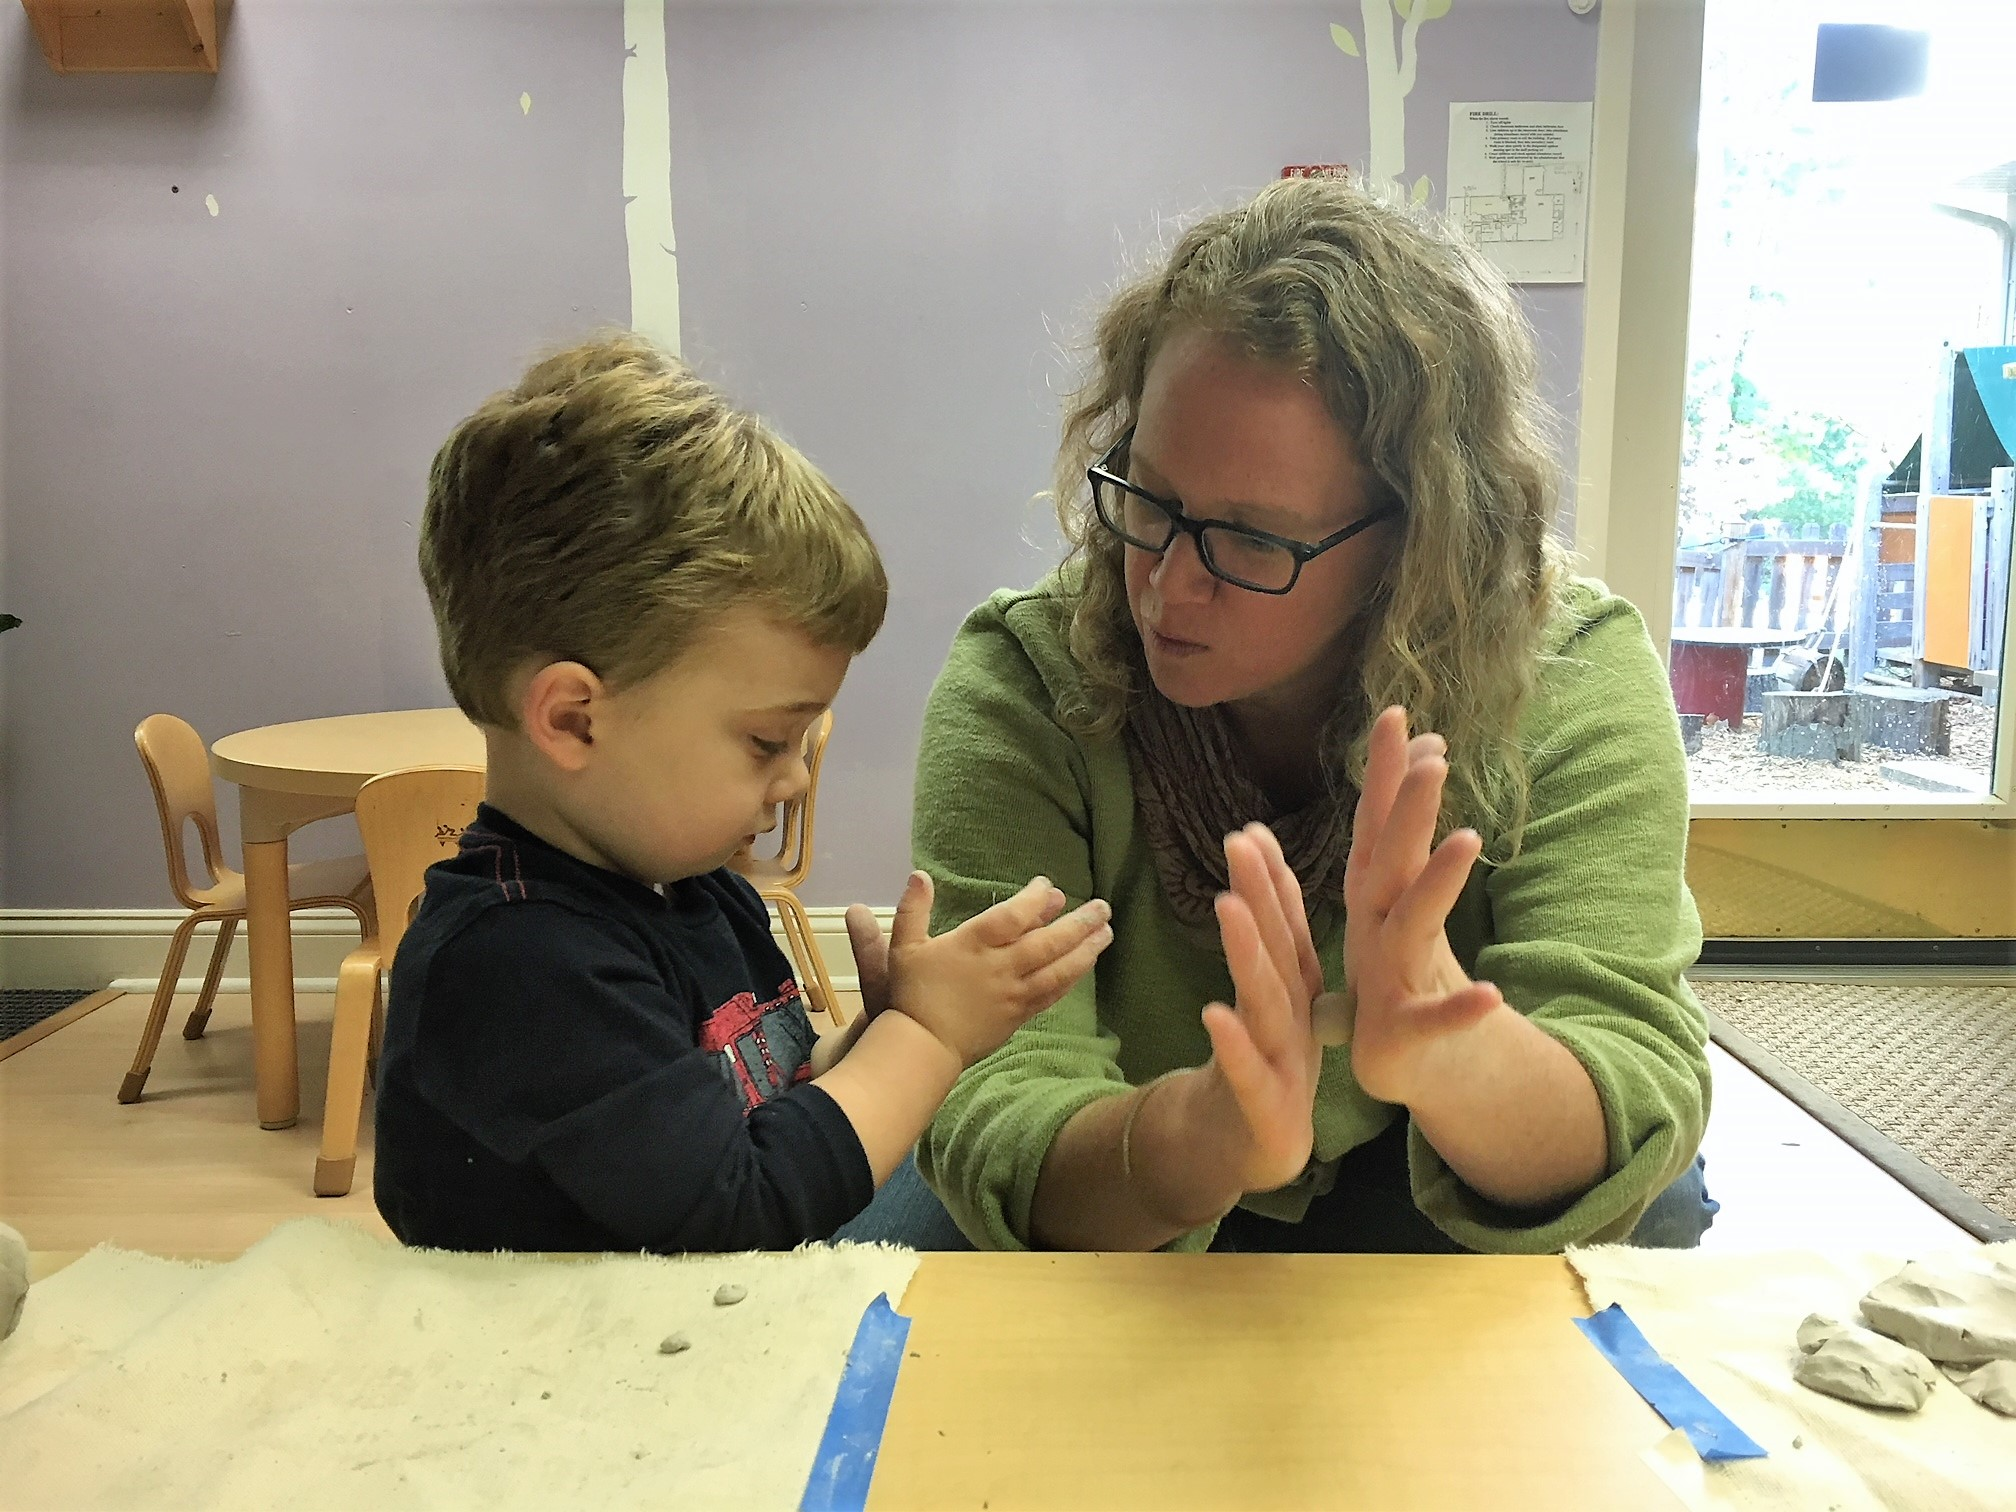 Studio art teacher, Sarah, shows this toddler how to make a ball with clay.